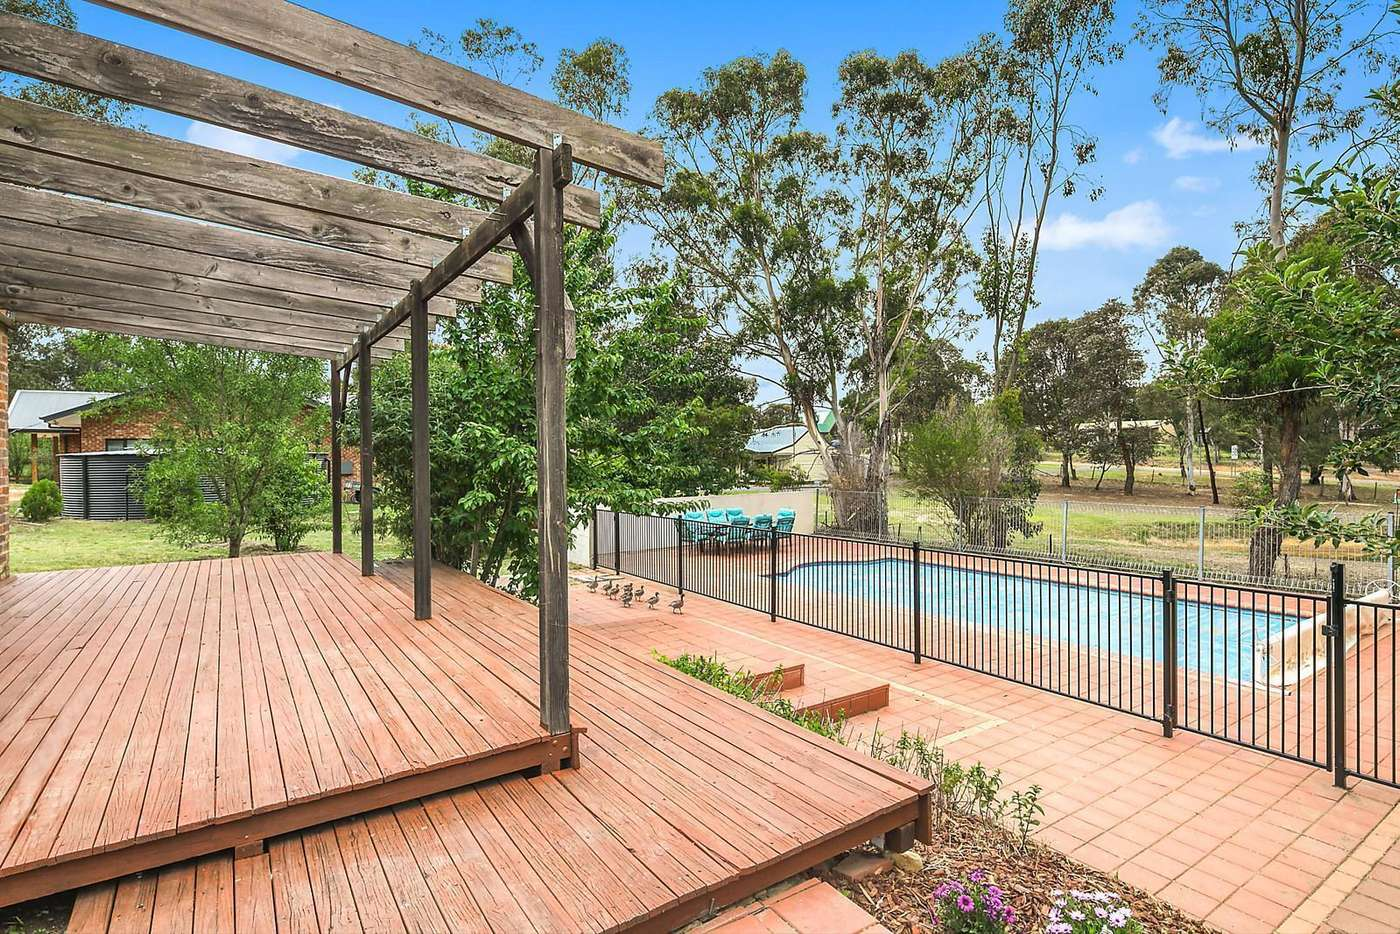 Main view of Homely house listing, 23 Morning Street, Gundaroo NSW 2620